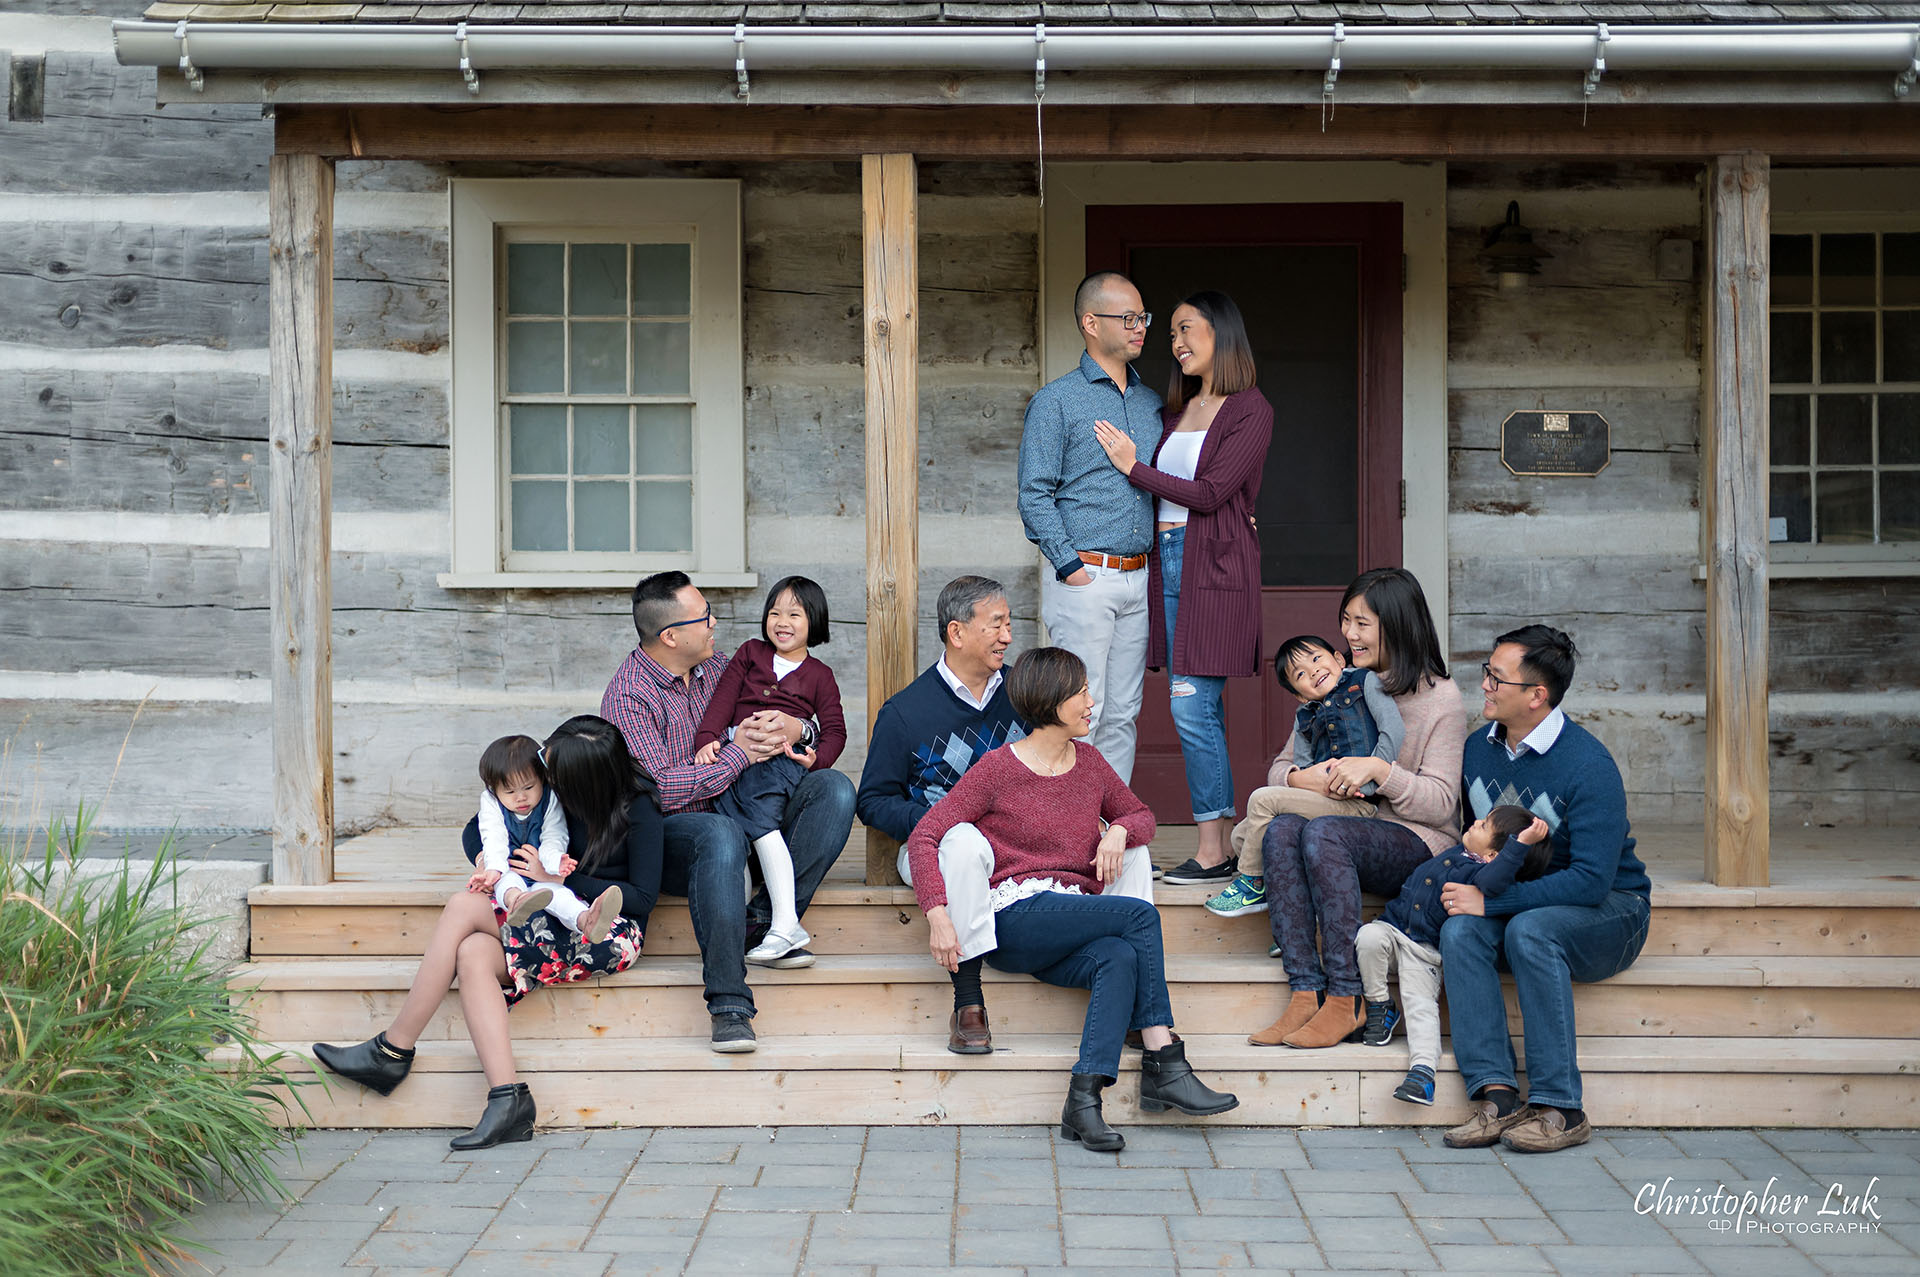 Christopher Luk Toronto Markham Photographer Grandparents Grandchildren Children Family Pictures Wedding Anniversary Celebration Candid Natural Photojournalistic Everyone Together Laughing Smiling Laugh Smile Old Historic Home Farm Log House Steps Stairs Pose Posing